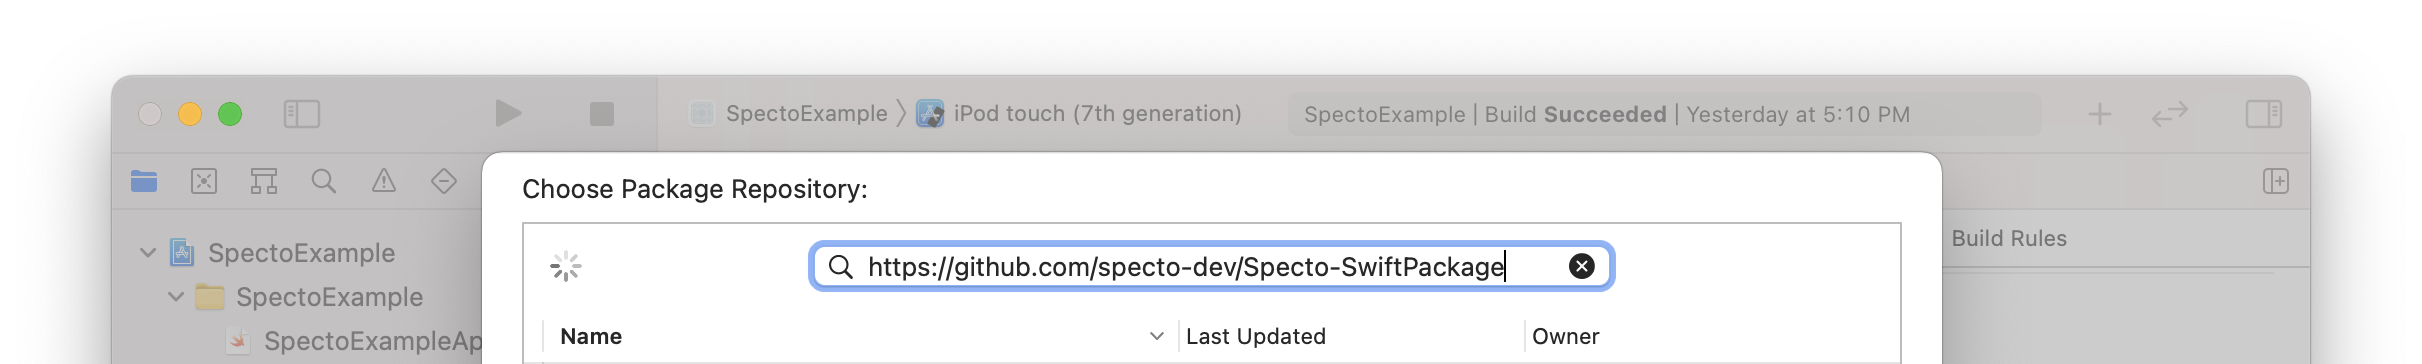 Entering the Specto Swift package URL in Xcode (step 2)